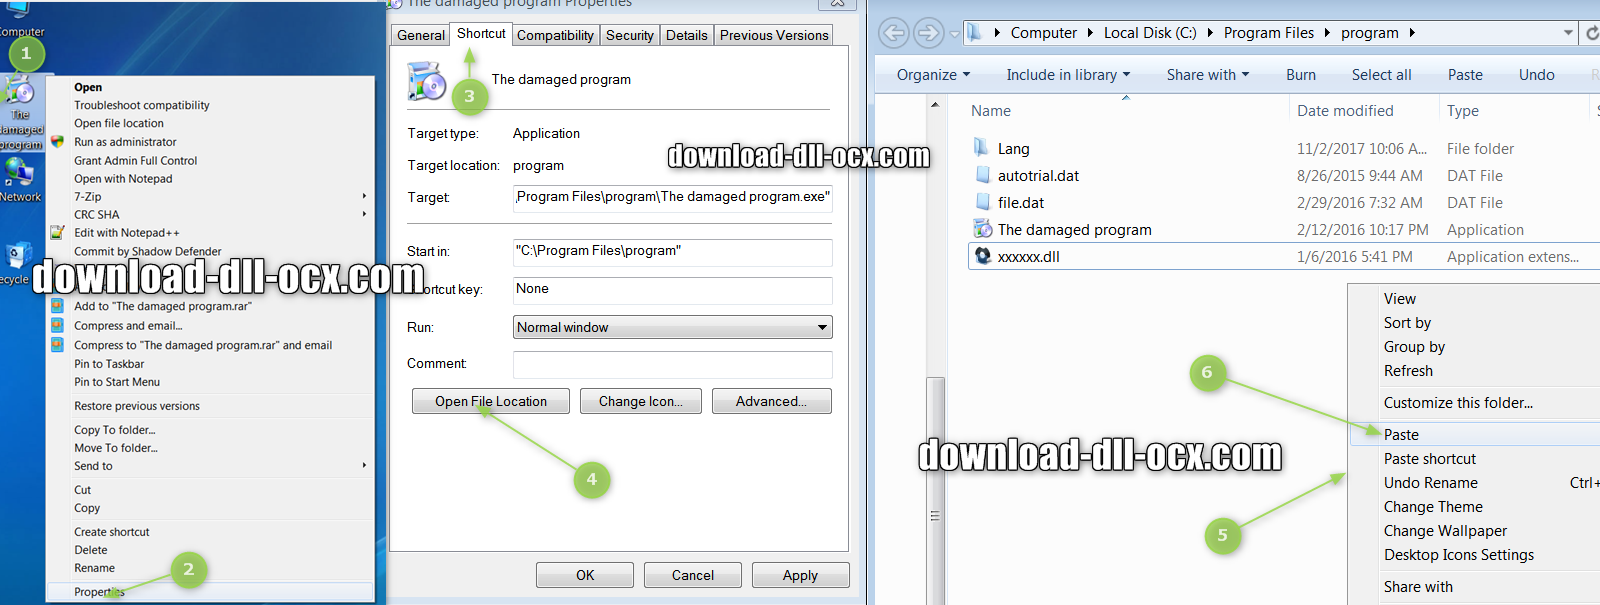 how to install BugHandler.dll file? for fix missing